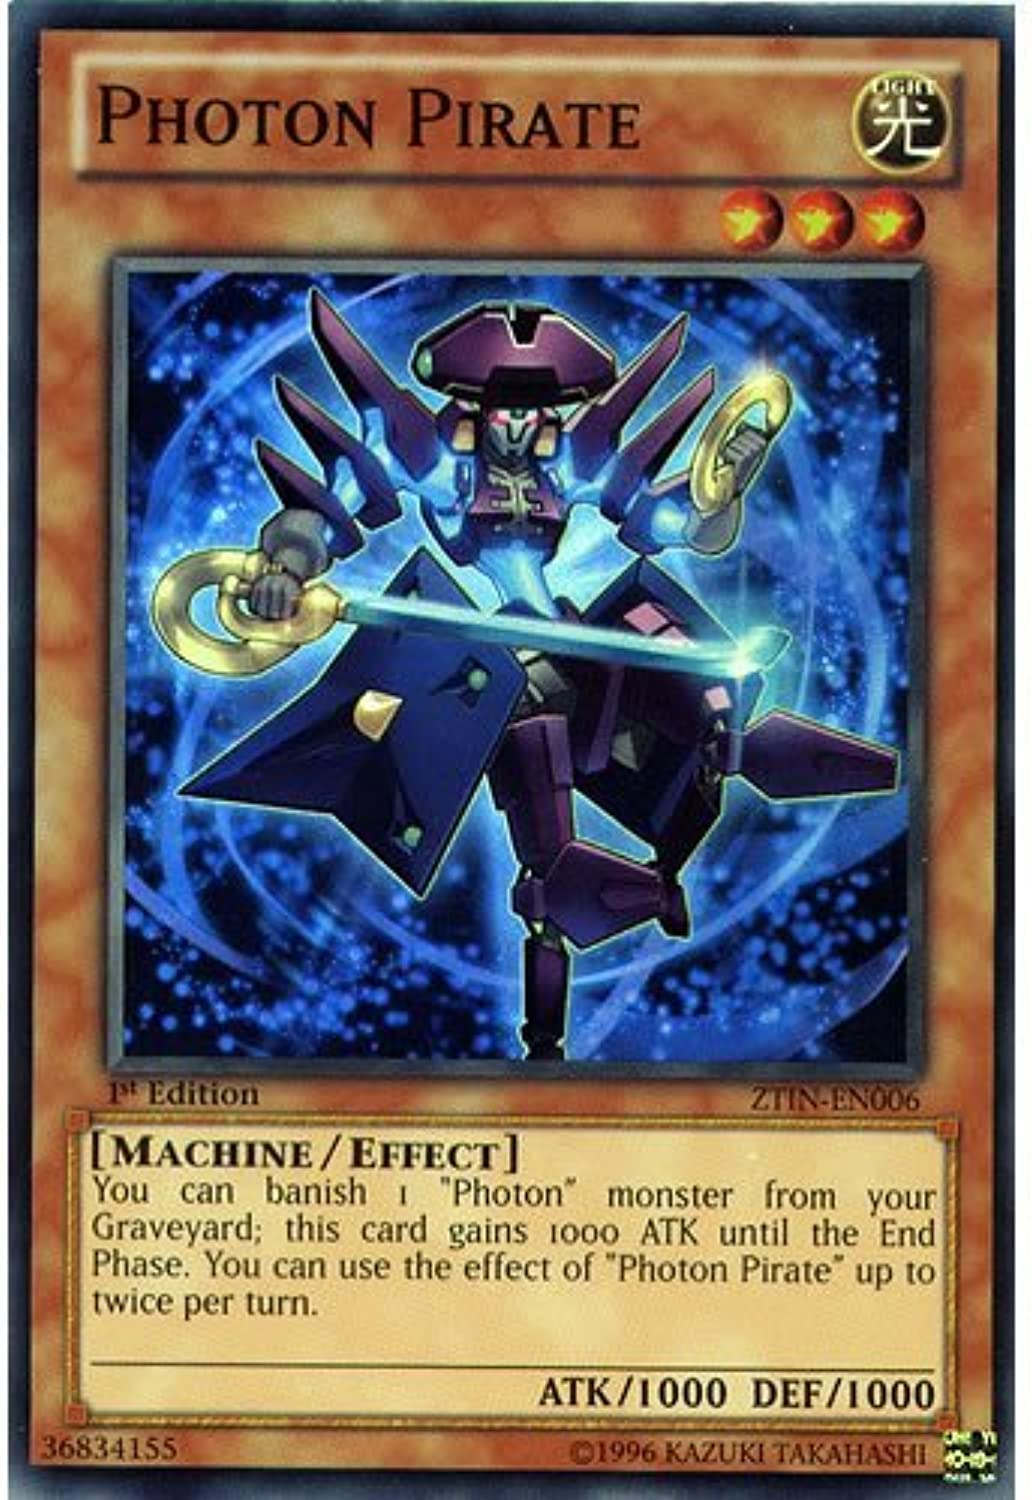 YuGiOh   ZTIN-EN006 Limited Ed Pcalienteon Pirate Super Rare autod - ( Yu-Gi-Oh  Single autod ) by Deckboosters